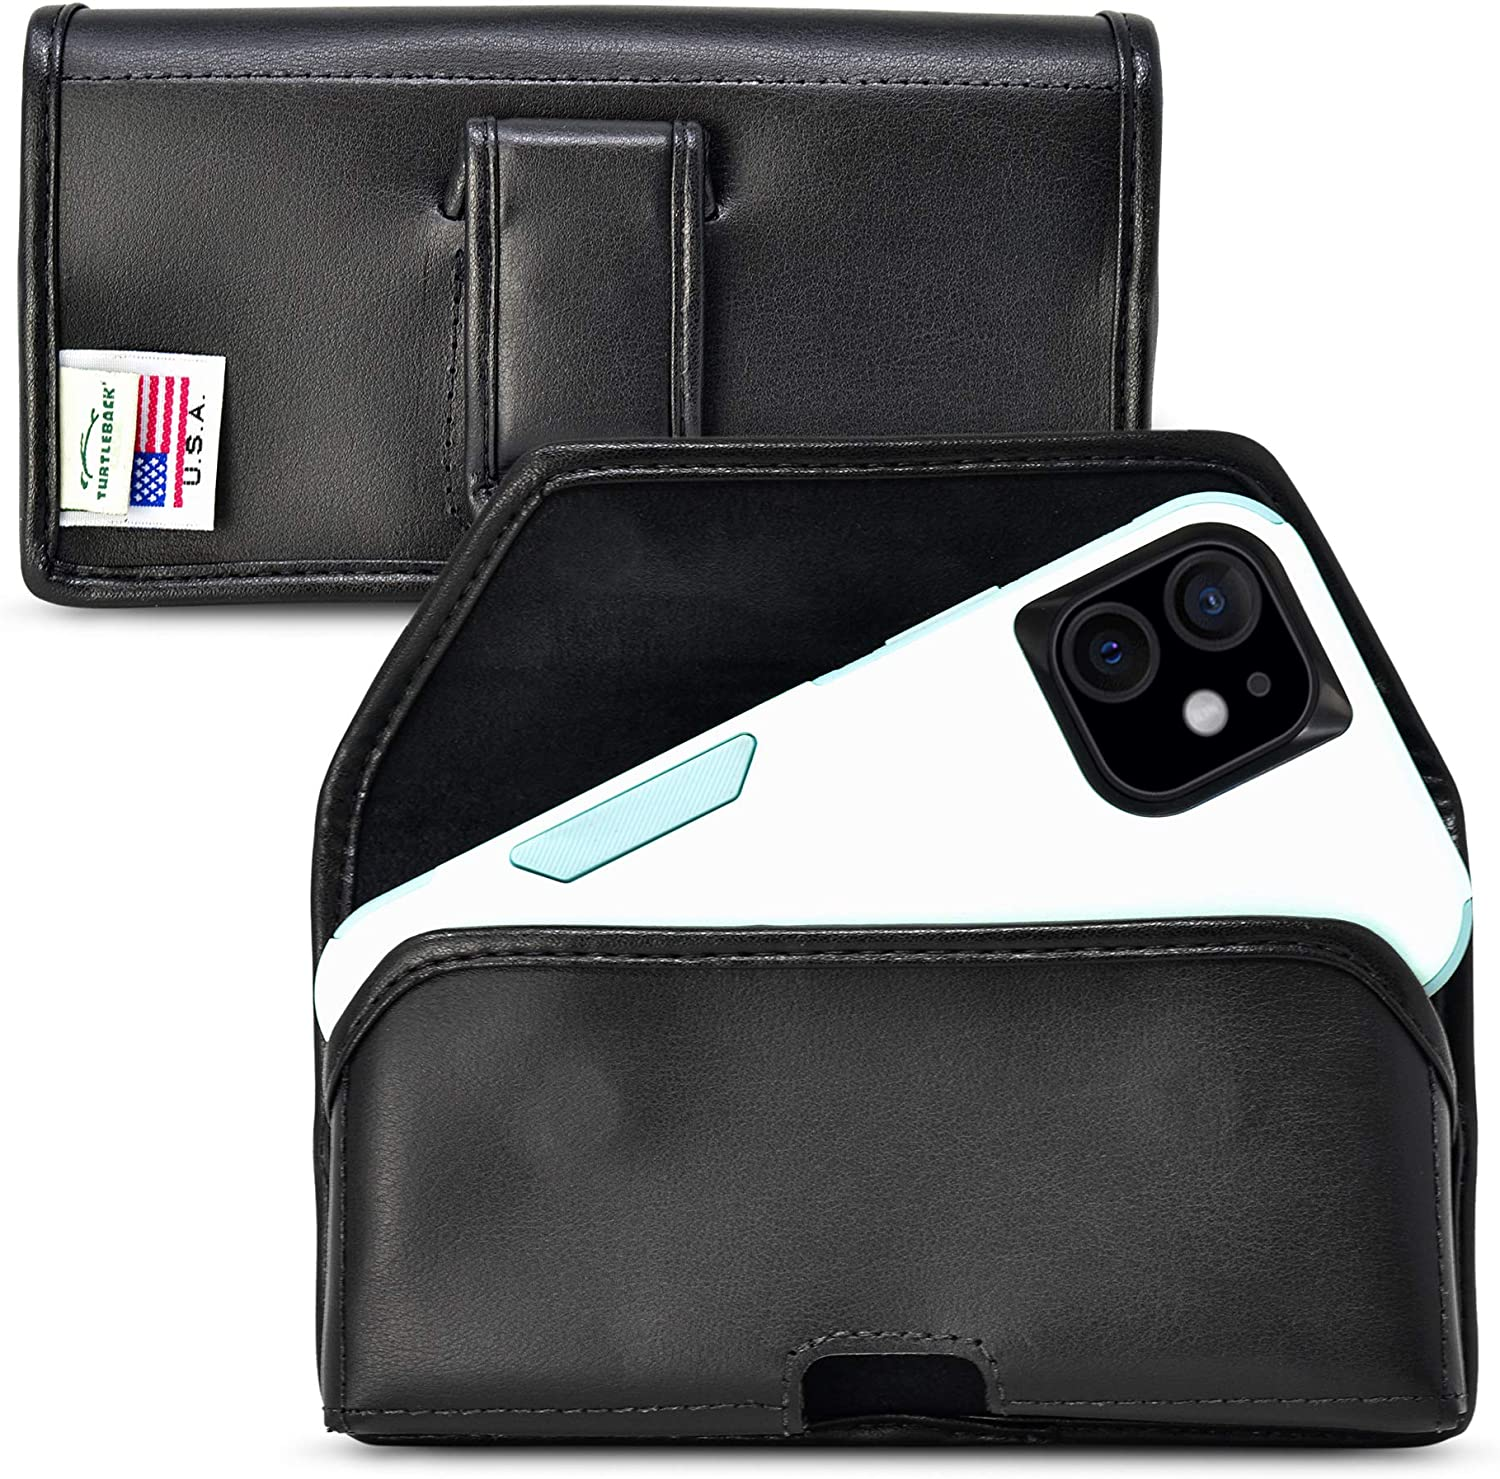 Turtleback Holster Designed for iPhone 12 & 13 Mini Fits with OTTERBOX COMMUTTER, Black Leather Belt Case Pouch with Executive Belt Clip, Horizontal Made in USA